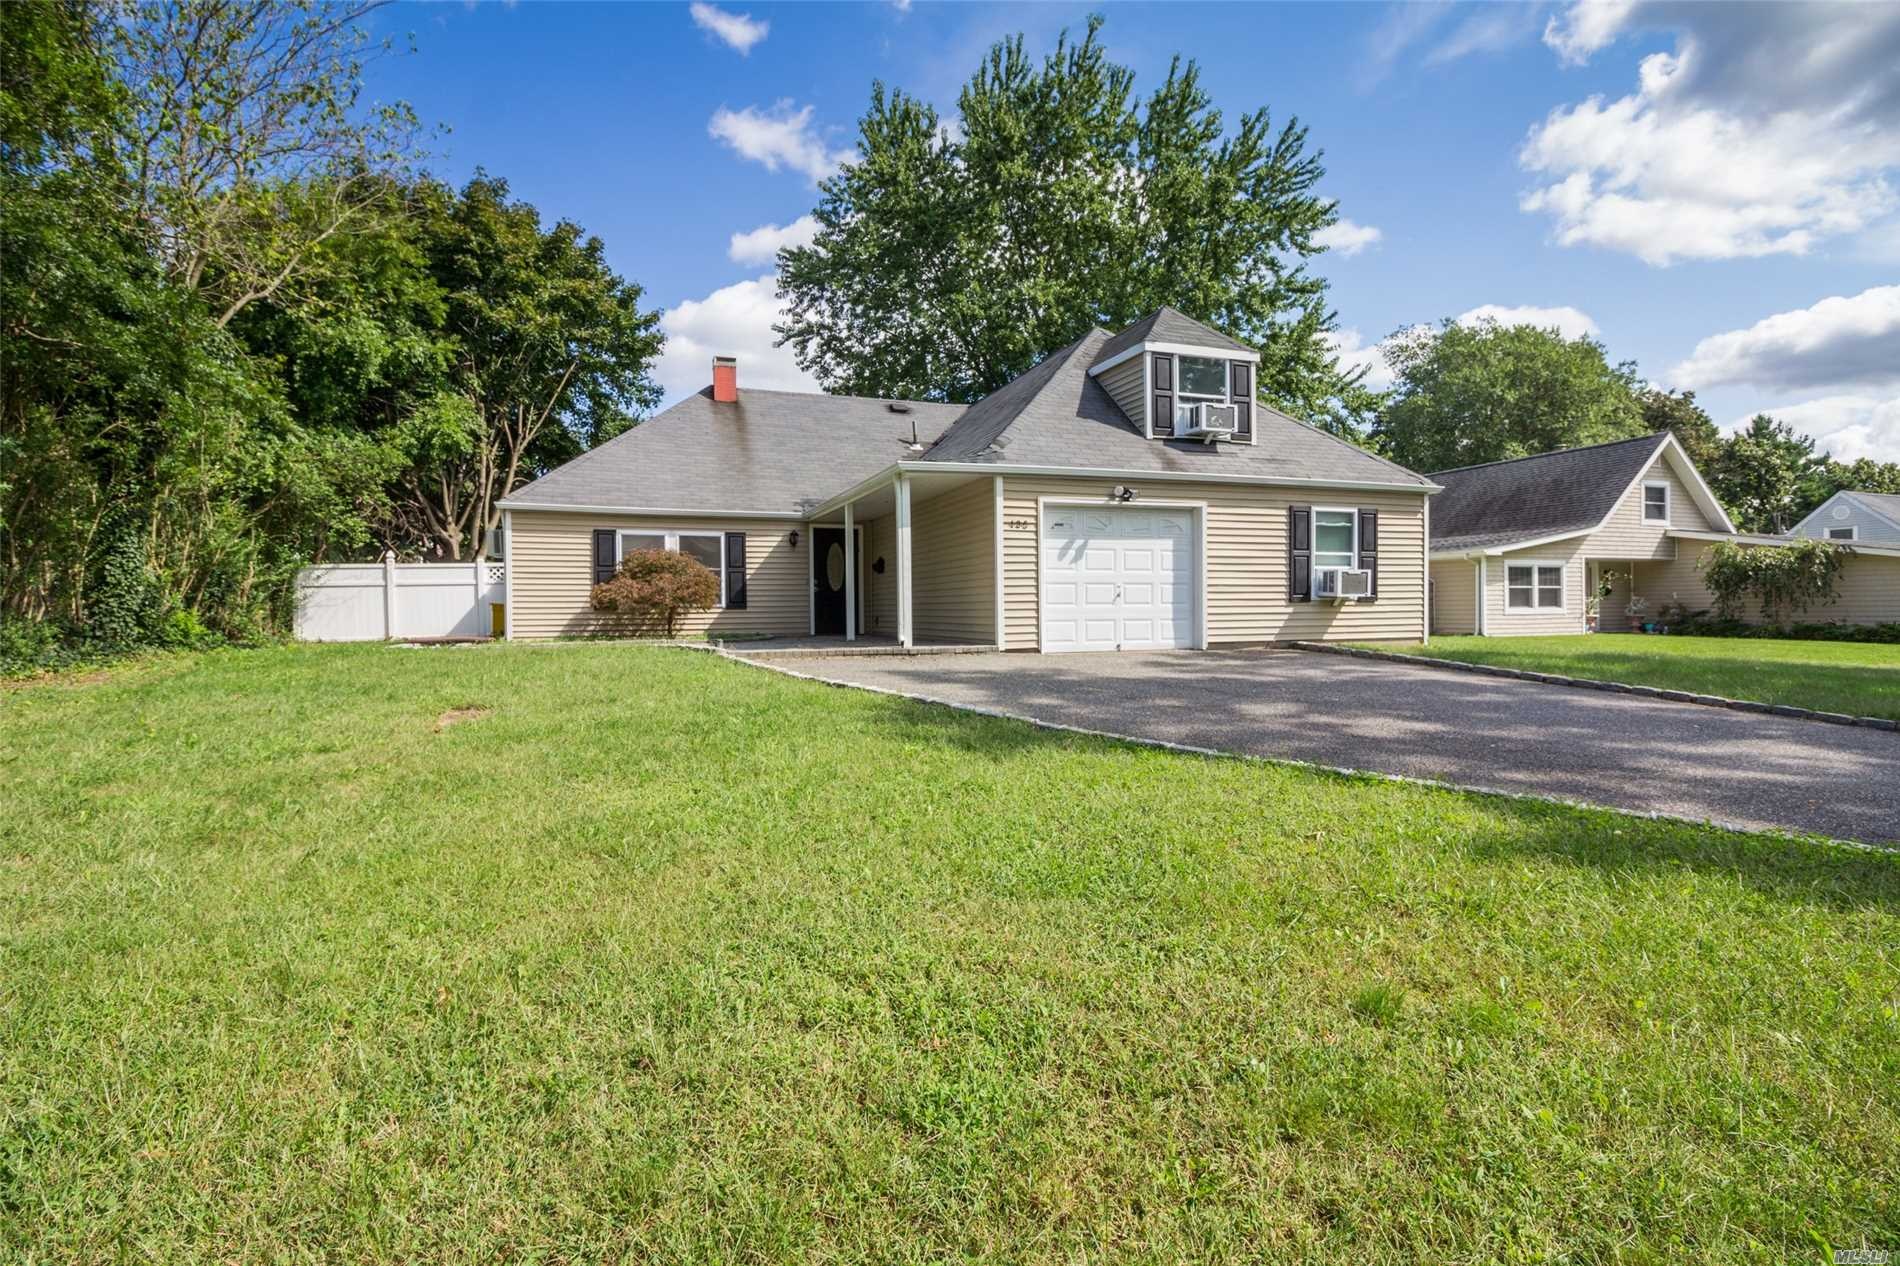 Spacious Open Floor Plan. All Updated: Kitchen With Granite Counter-Tops, Stainless Steel Appliances, All New Laminated Wood Floors Throughout, 5 Bedrooms, 3 Baths, Large Fenced In Yard, House Is Much Larger Than It Appears From The Street. Don't Miss This One !!